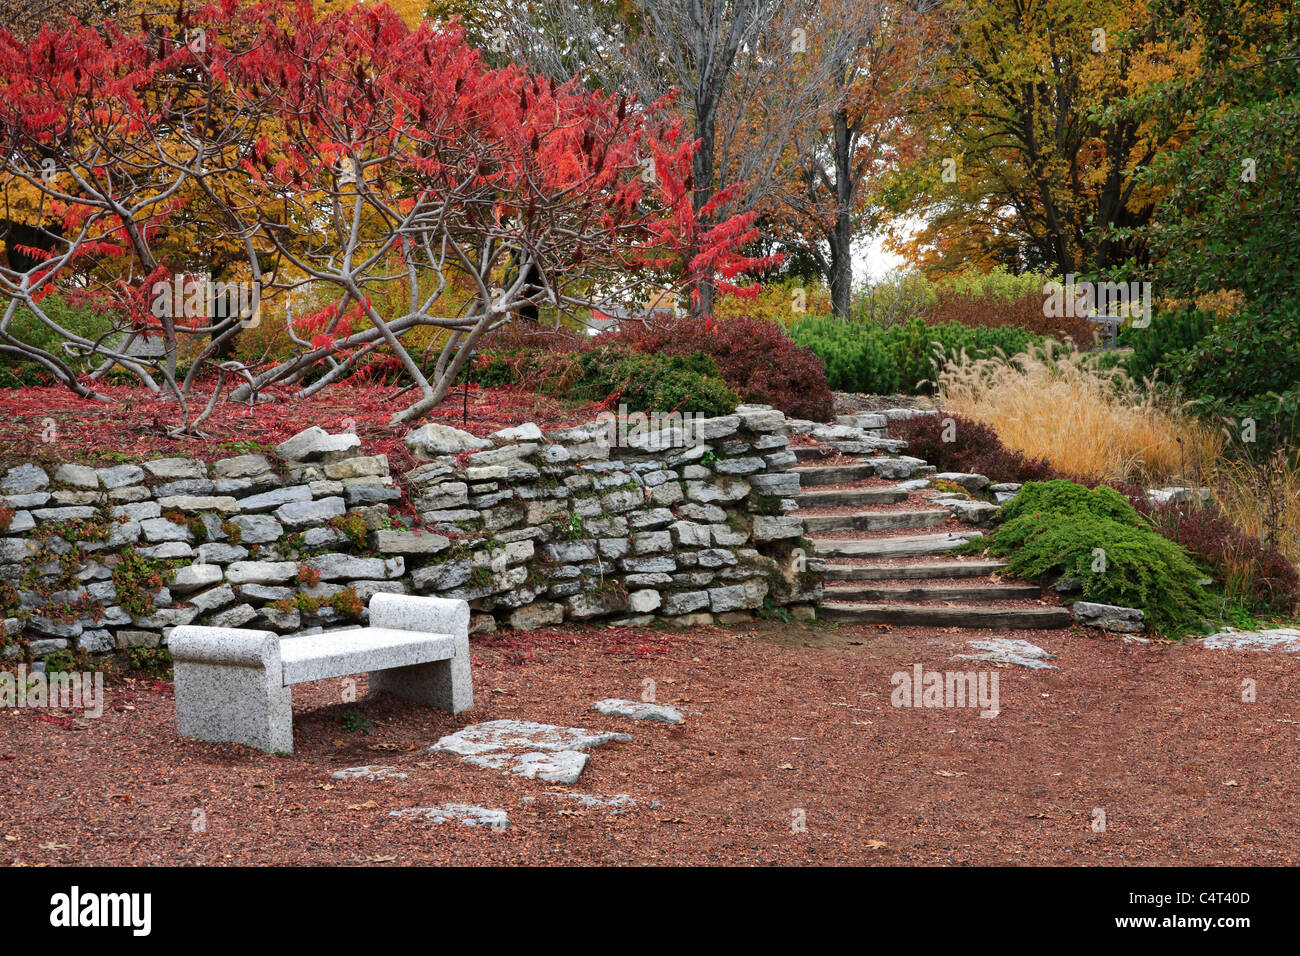 Garden Stairs Usa Stock Photos & Garden Stairs Usa Stock Images - Alamy